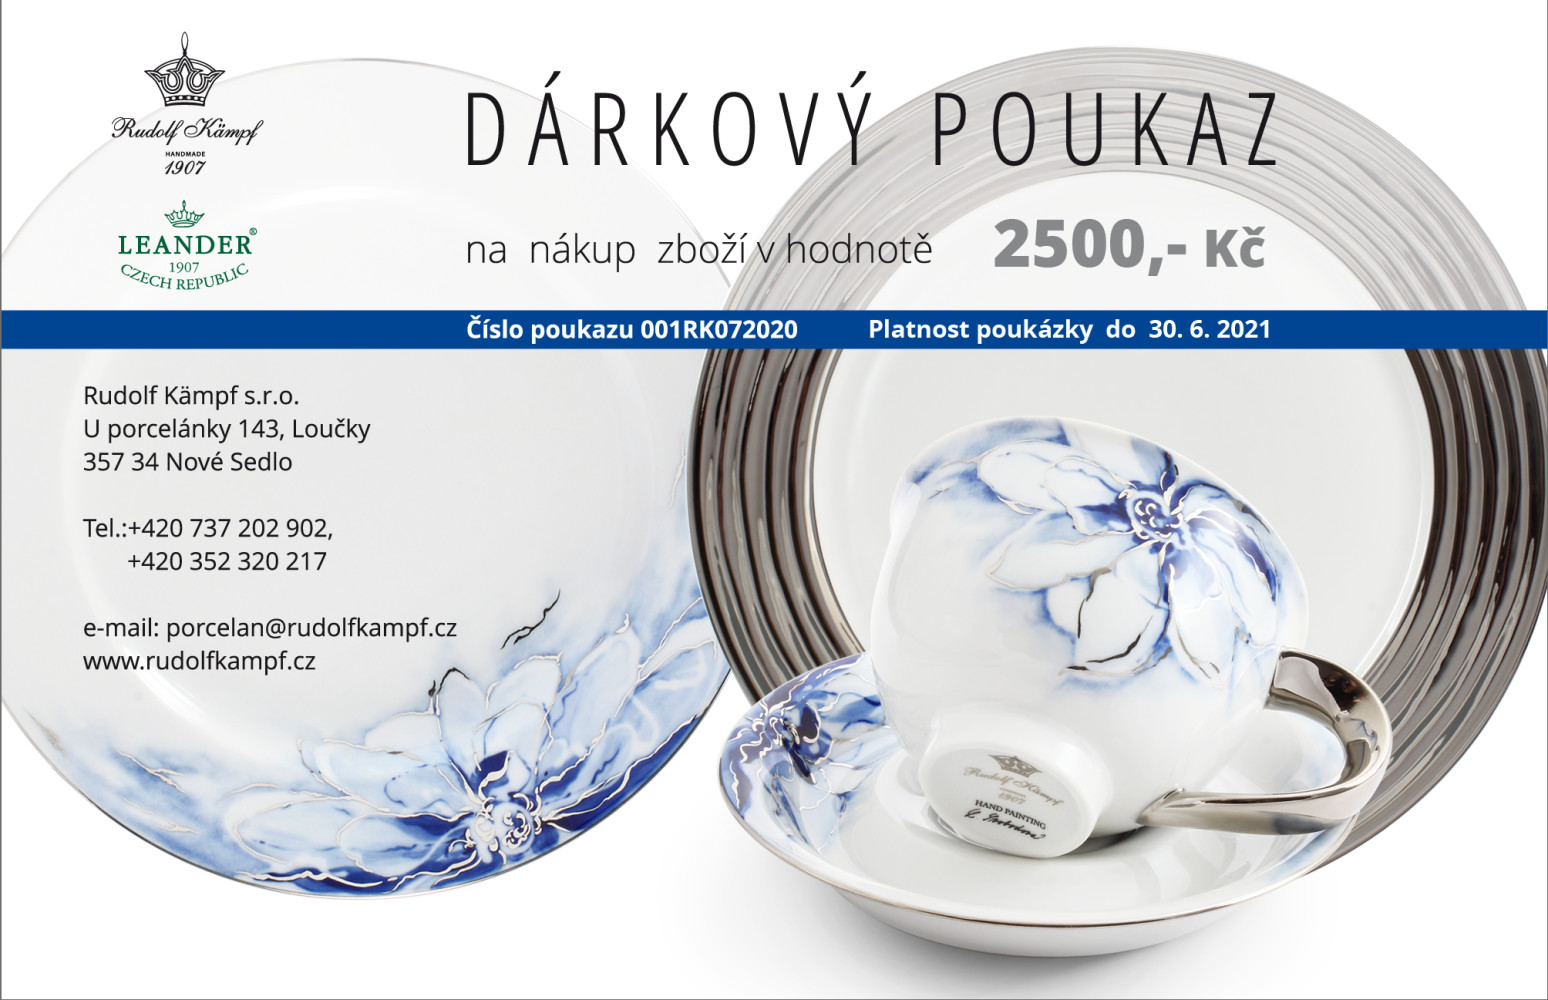 Gift voucher at the amount of CZK 2,500